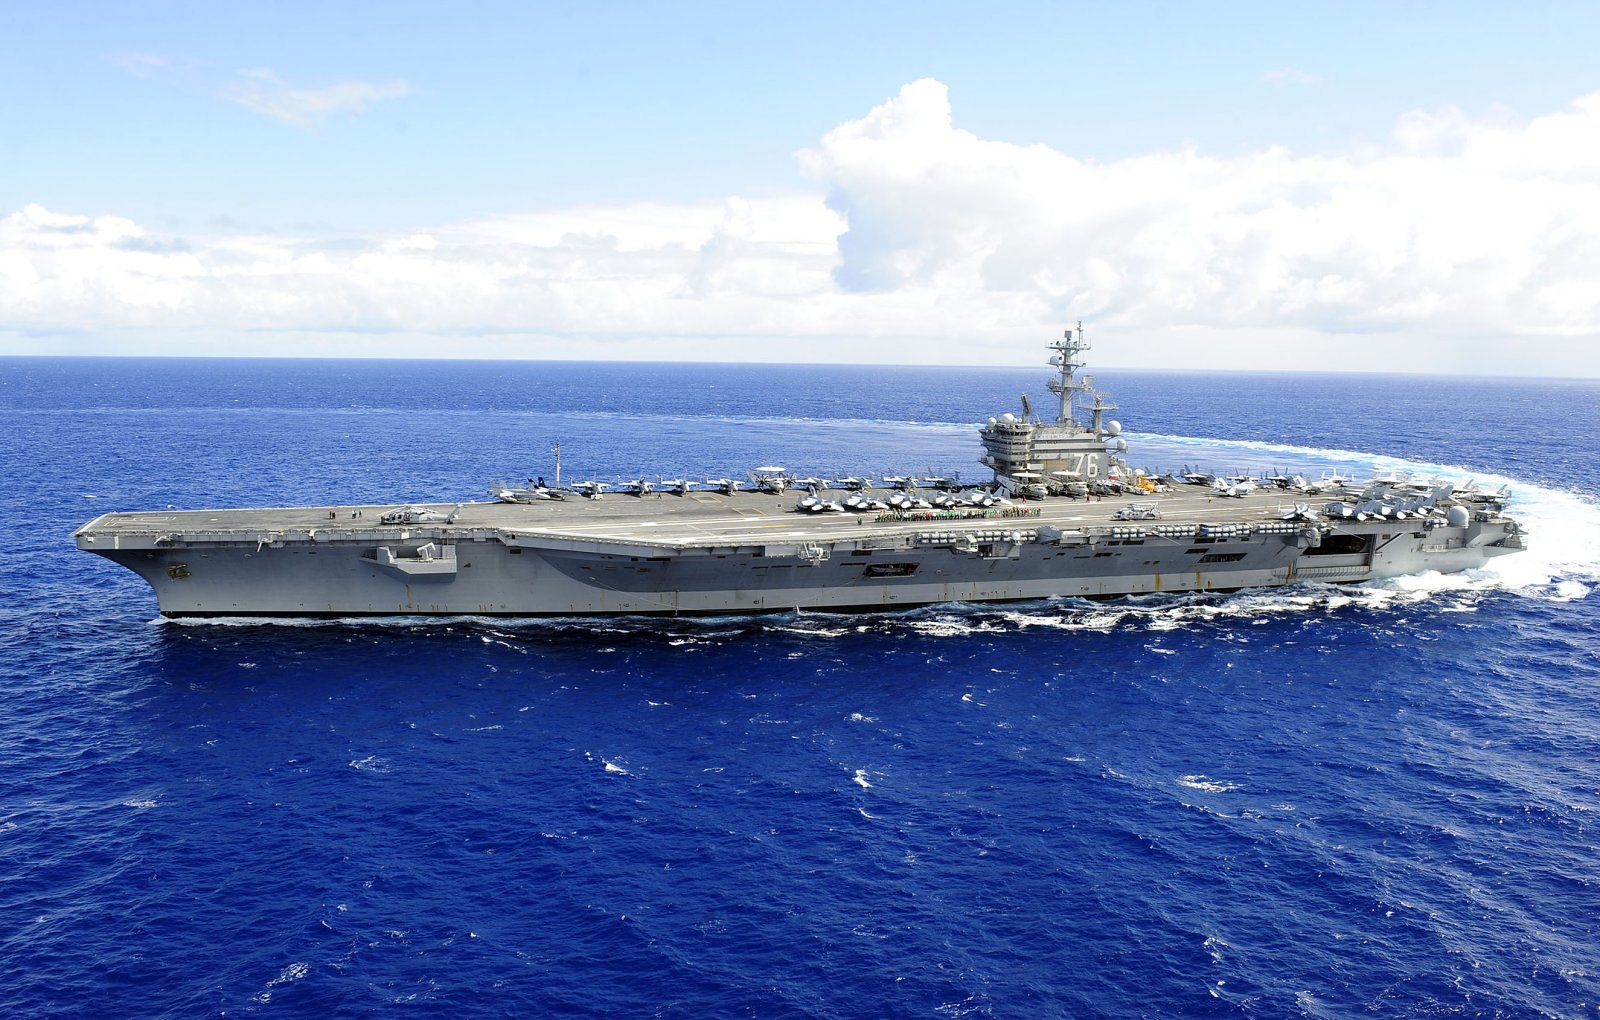 nimitz chat The lighthouse and naval vessel urban legend describes an encounter between a large naval ship and what at first appears to be another vessel, with which the ship is on a collision course the naval vessel.